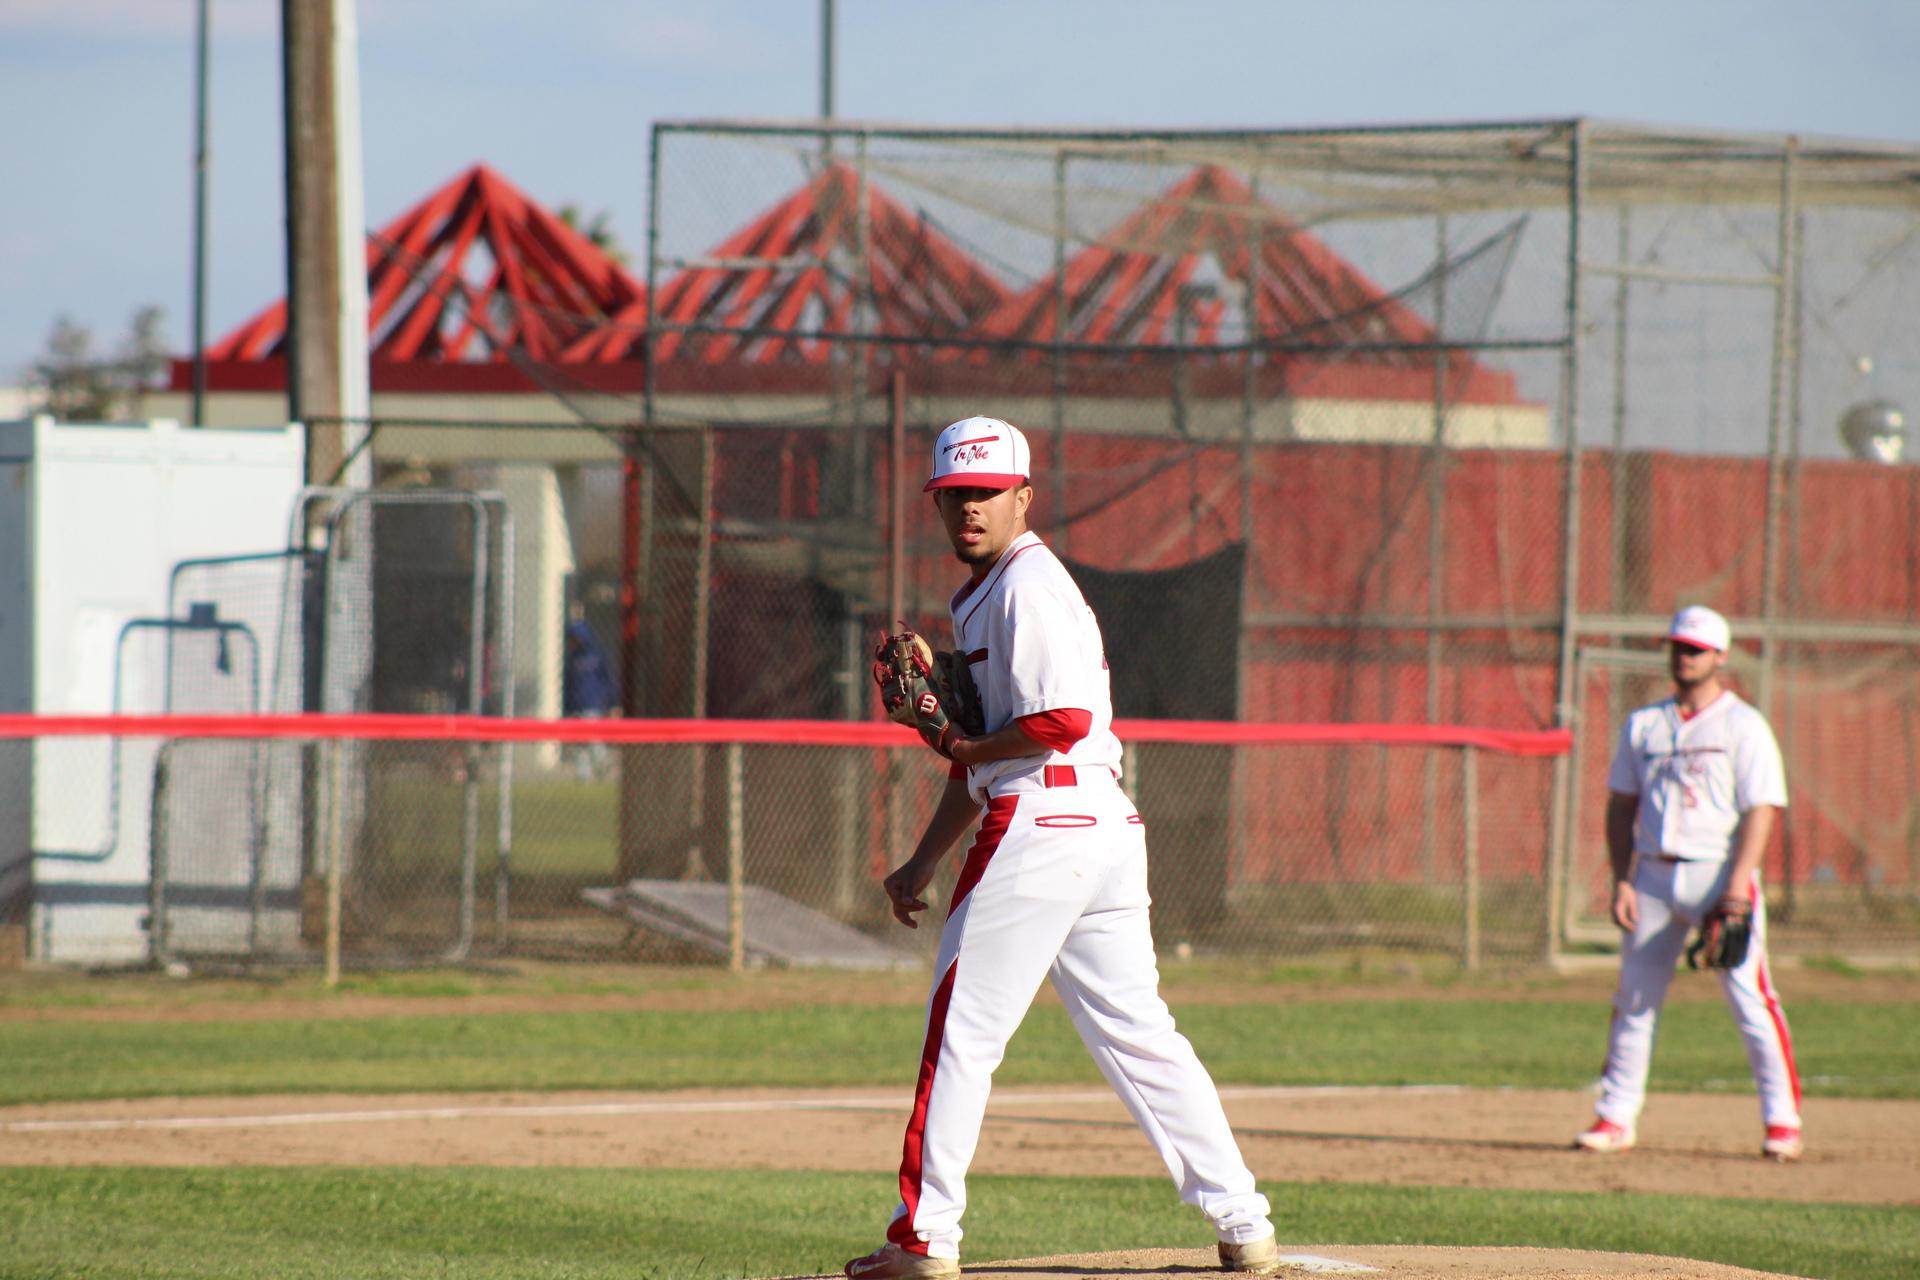 Varsity Baseball playing against Lemoore